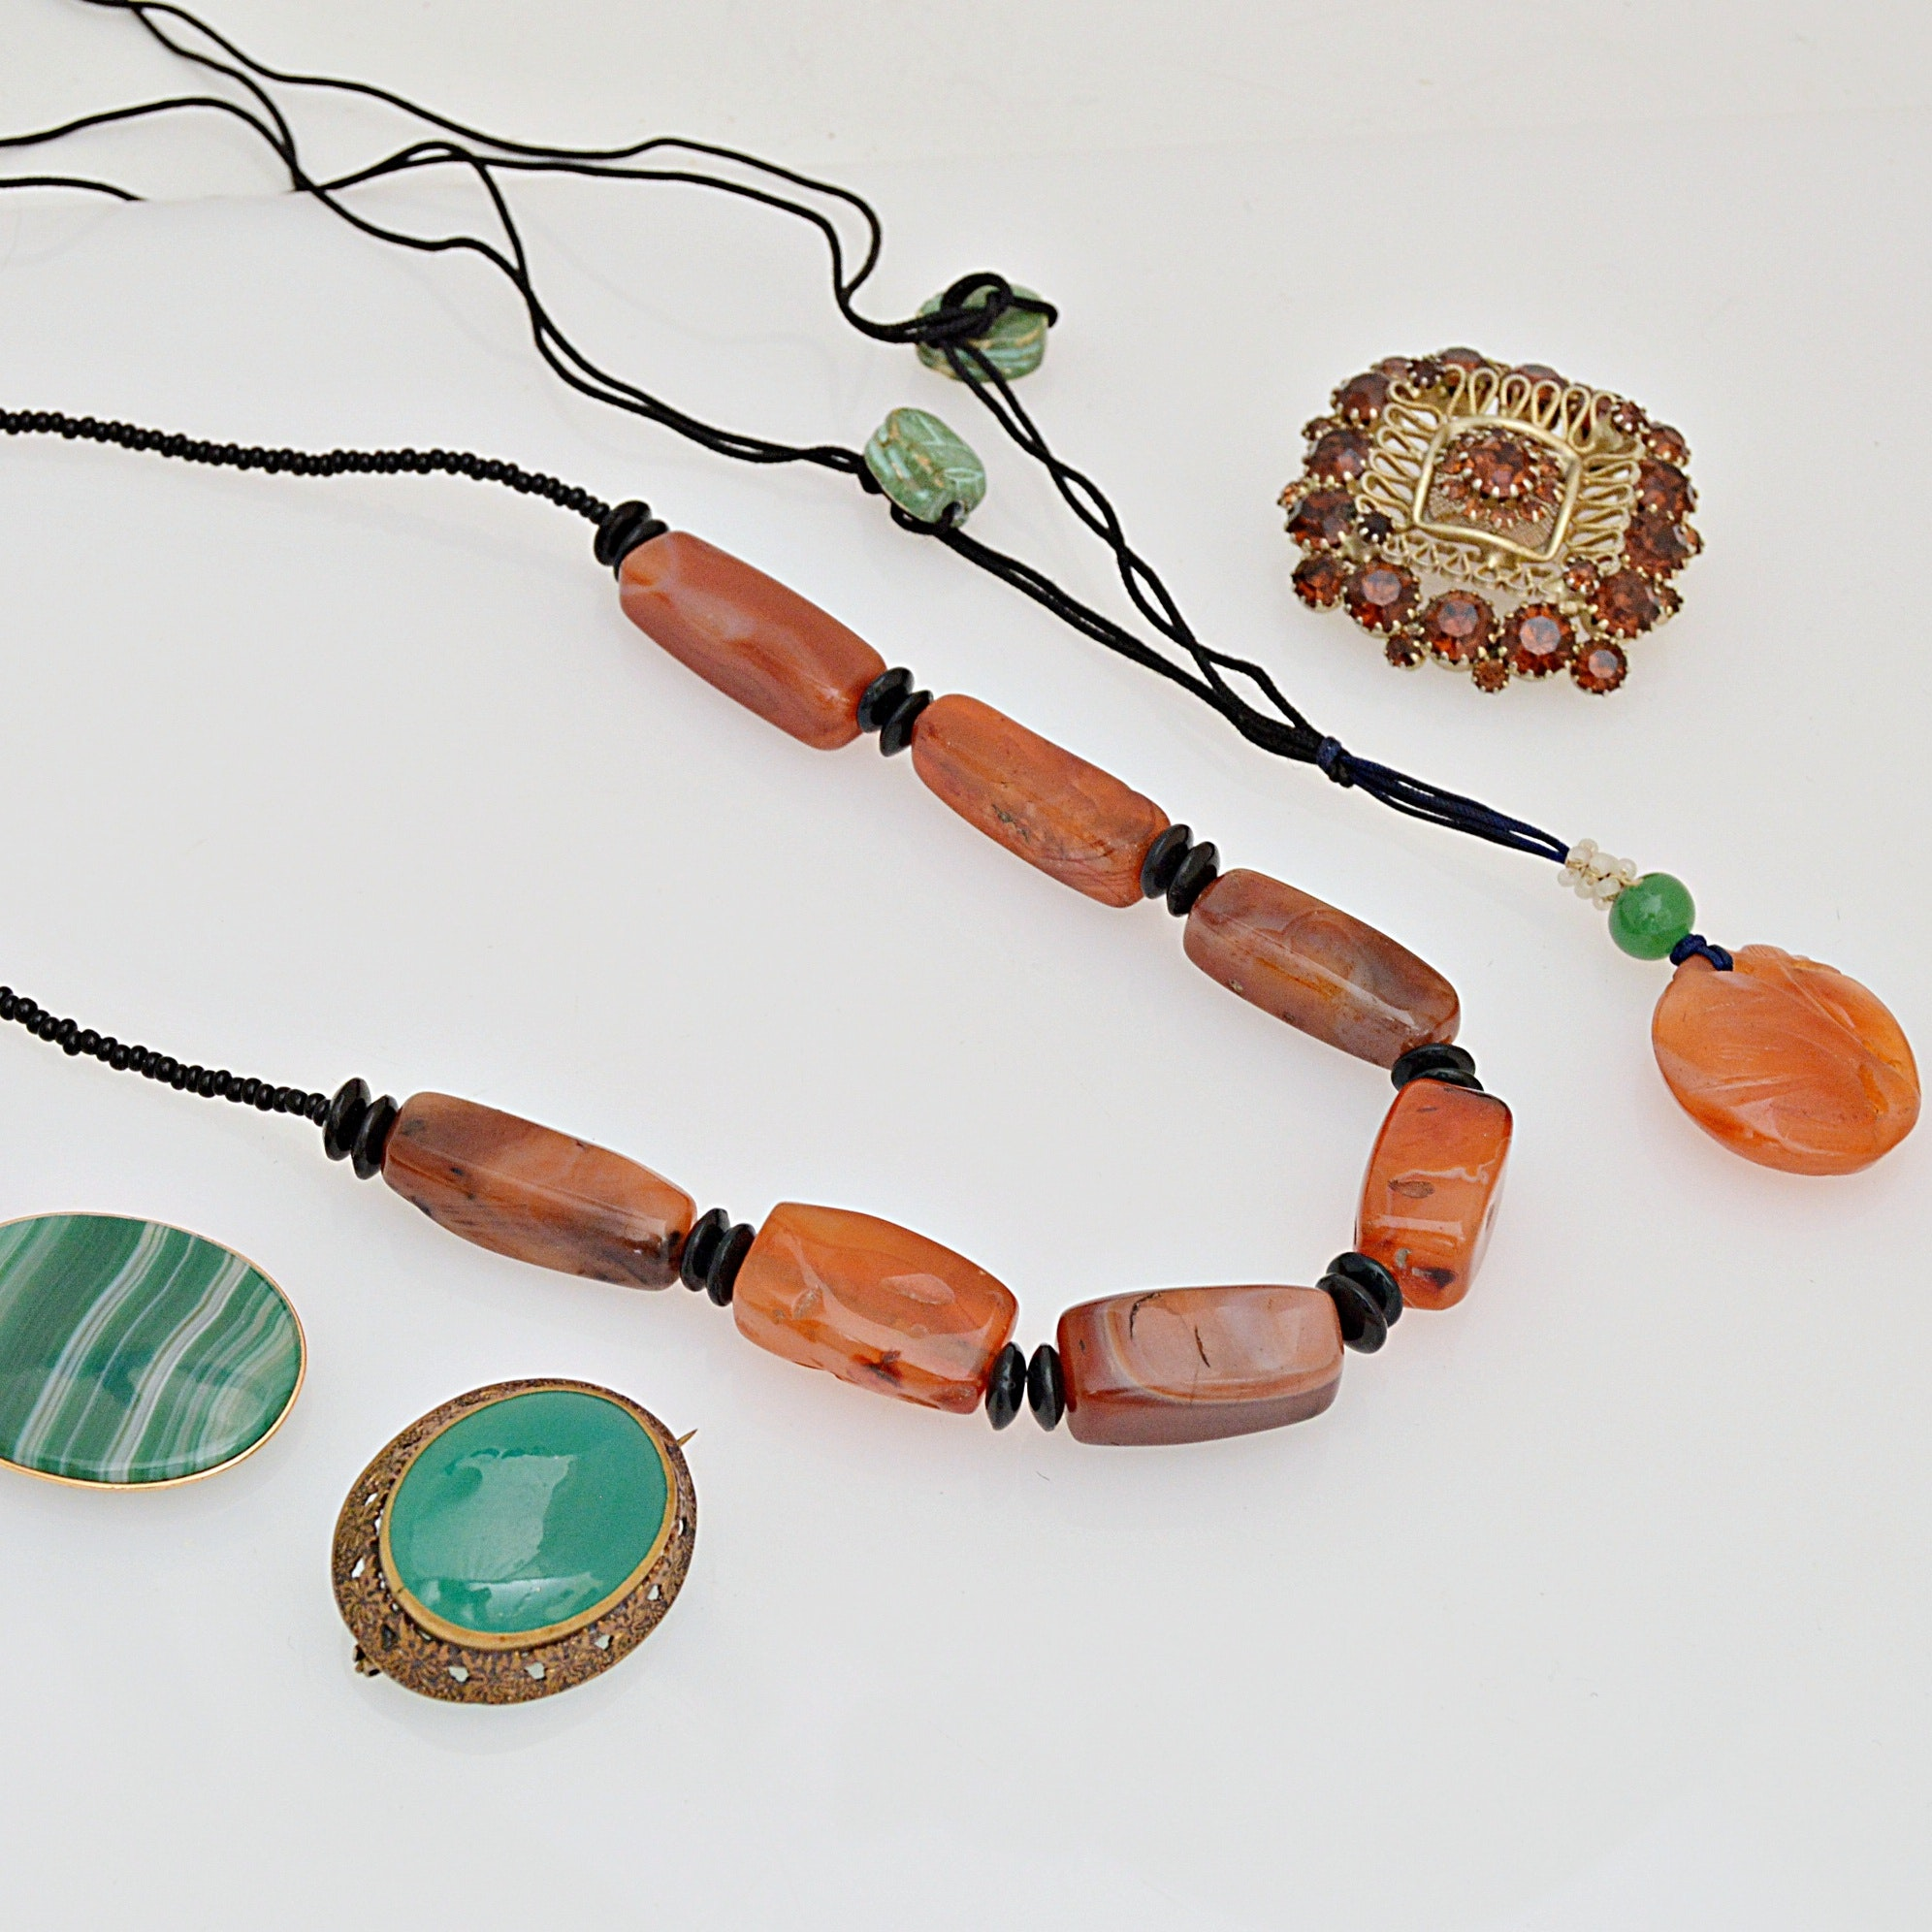 Vintage Gold Tone Pendant Necklaces and Brooches with Agate and Glass